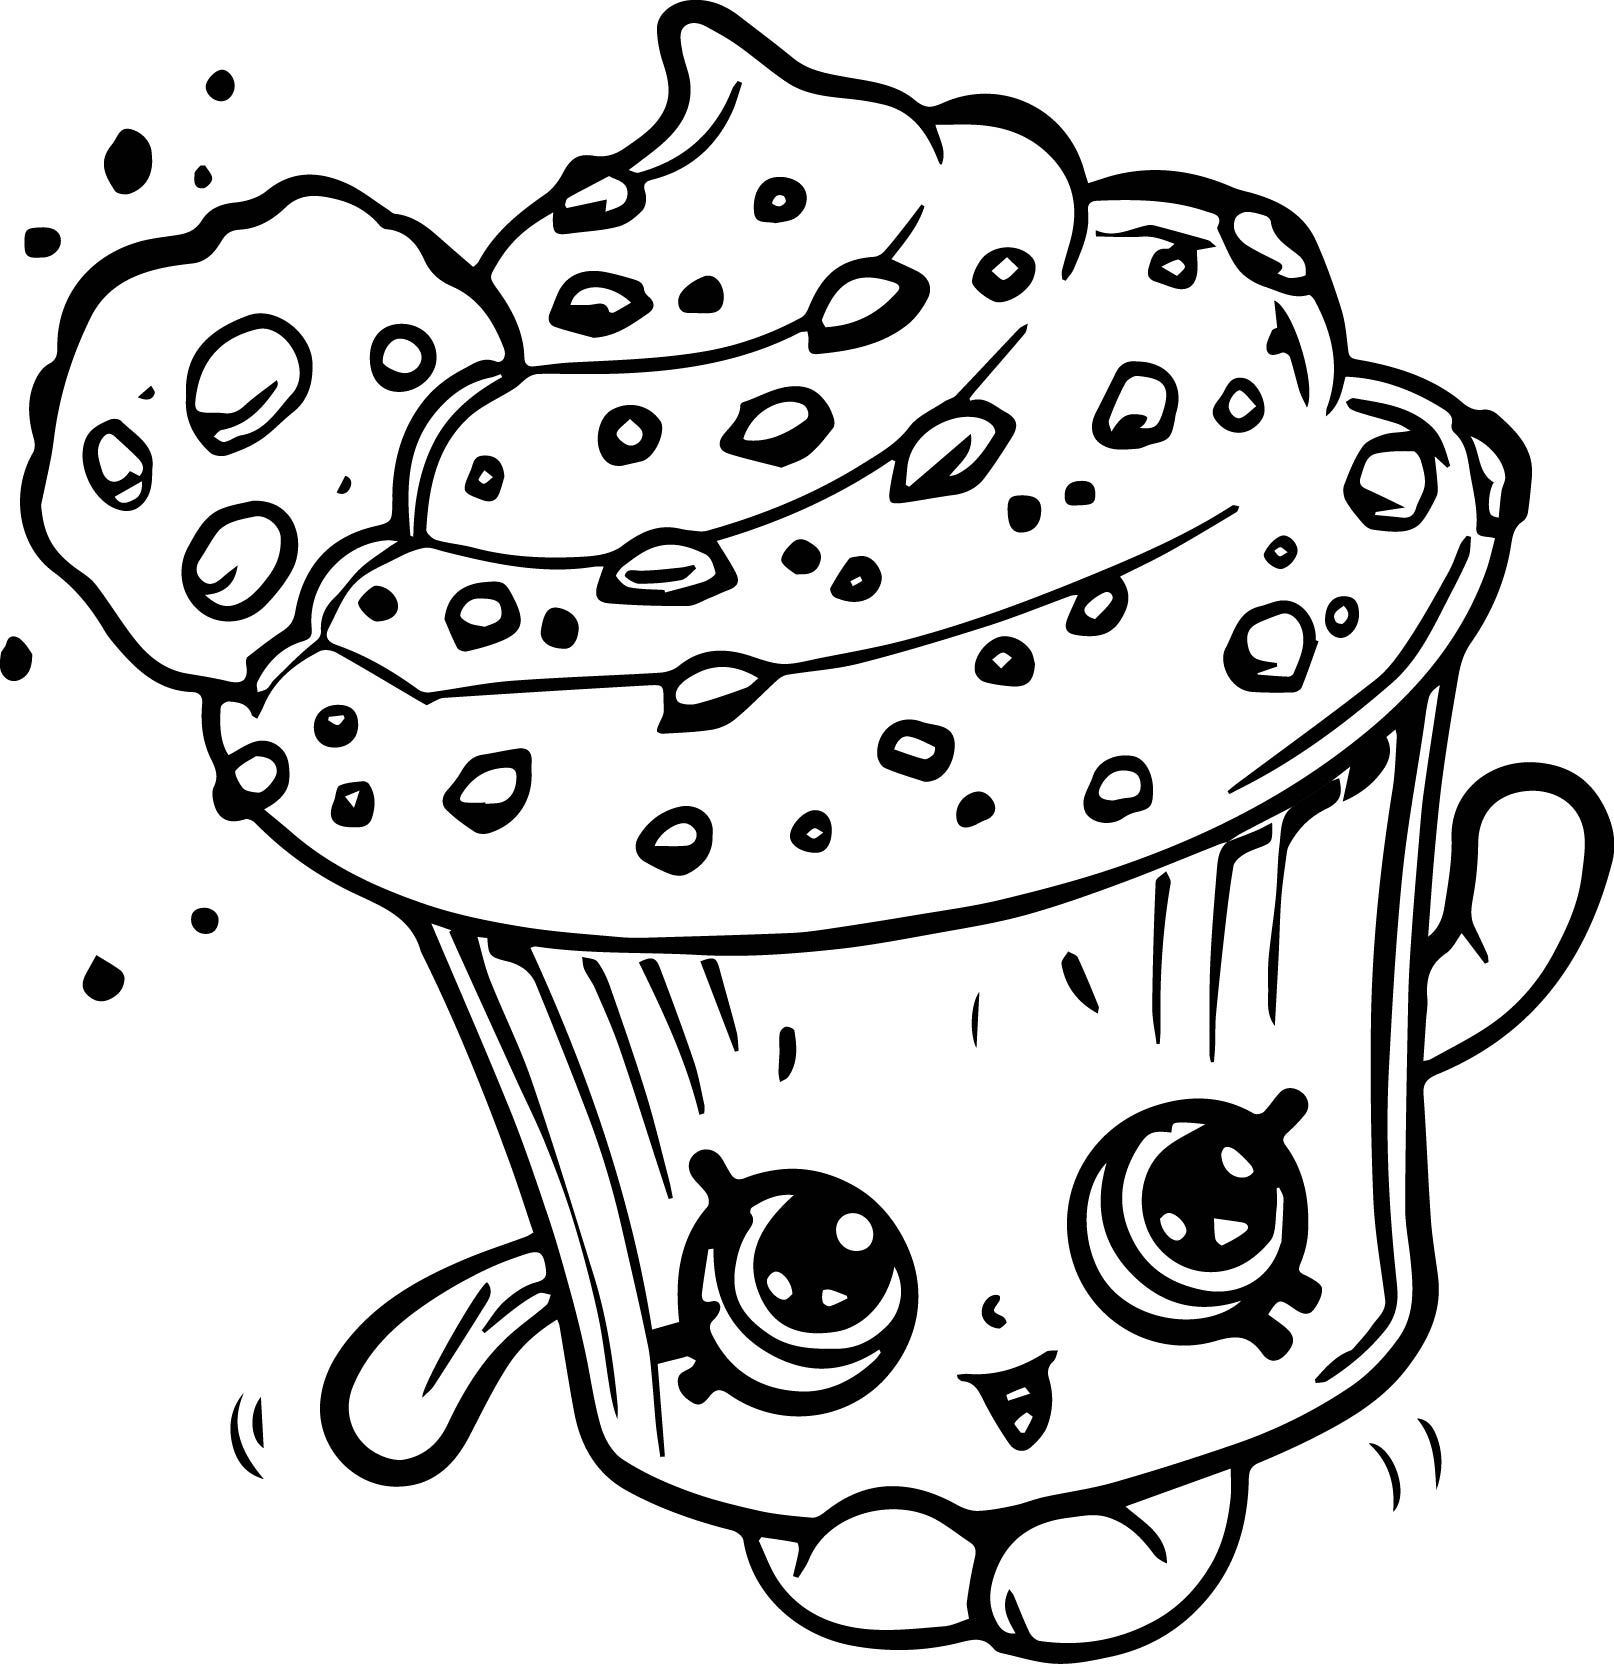 Free Shopkins Coloring Pages Printable Free Coloring Sheets Shopkins Coloring Pages Free Printable Shopkins Colouring Pages Shopkin Coloring Pages